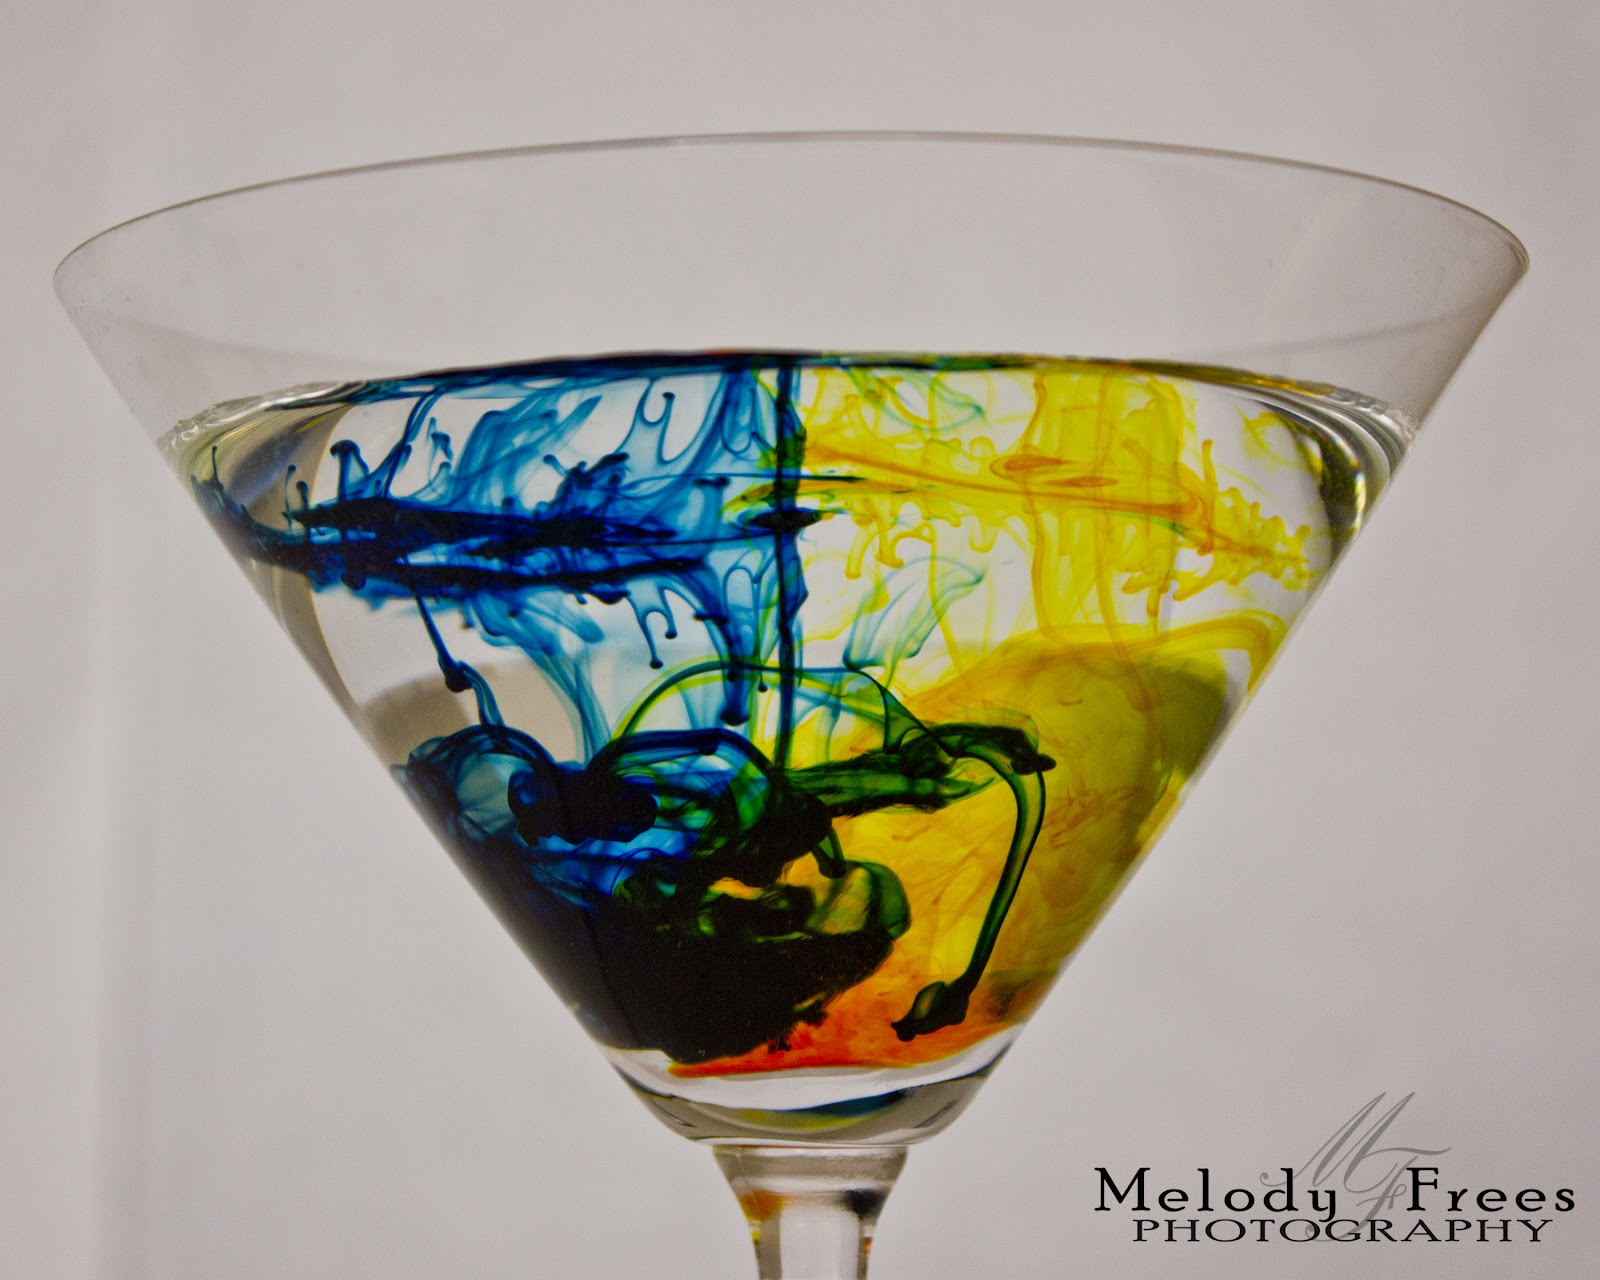 Melody Frees Photography Food Coloring And Water